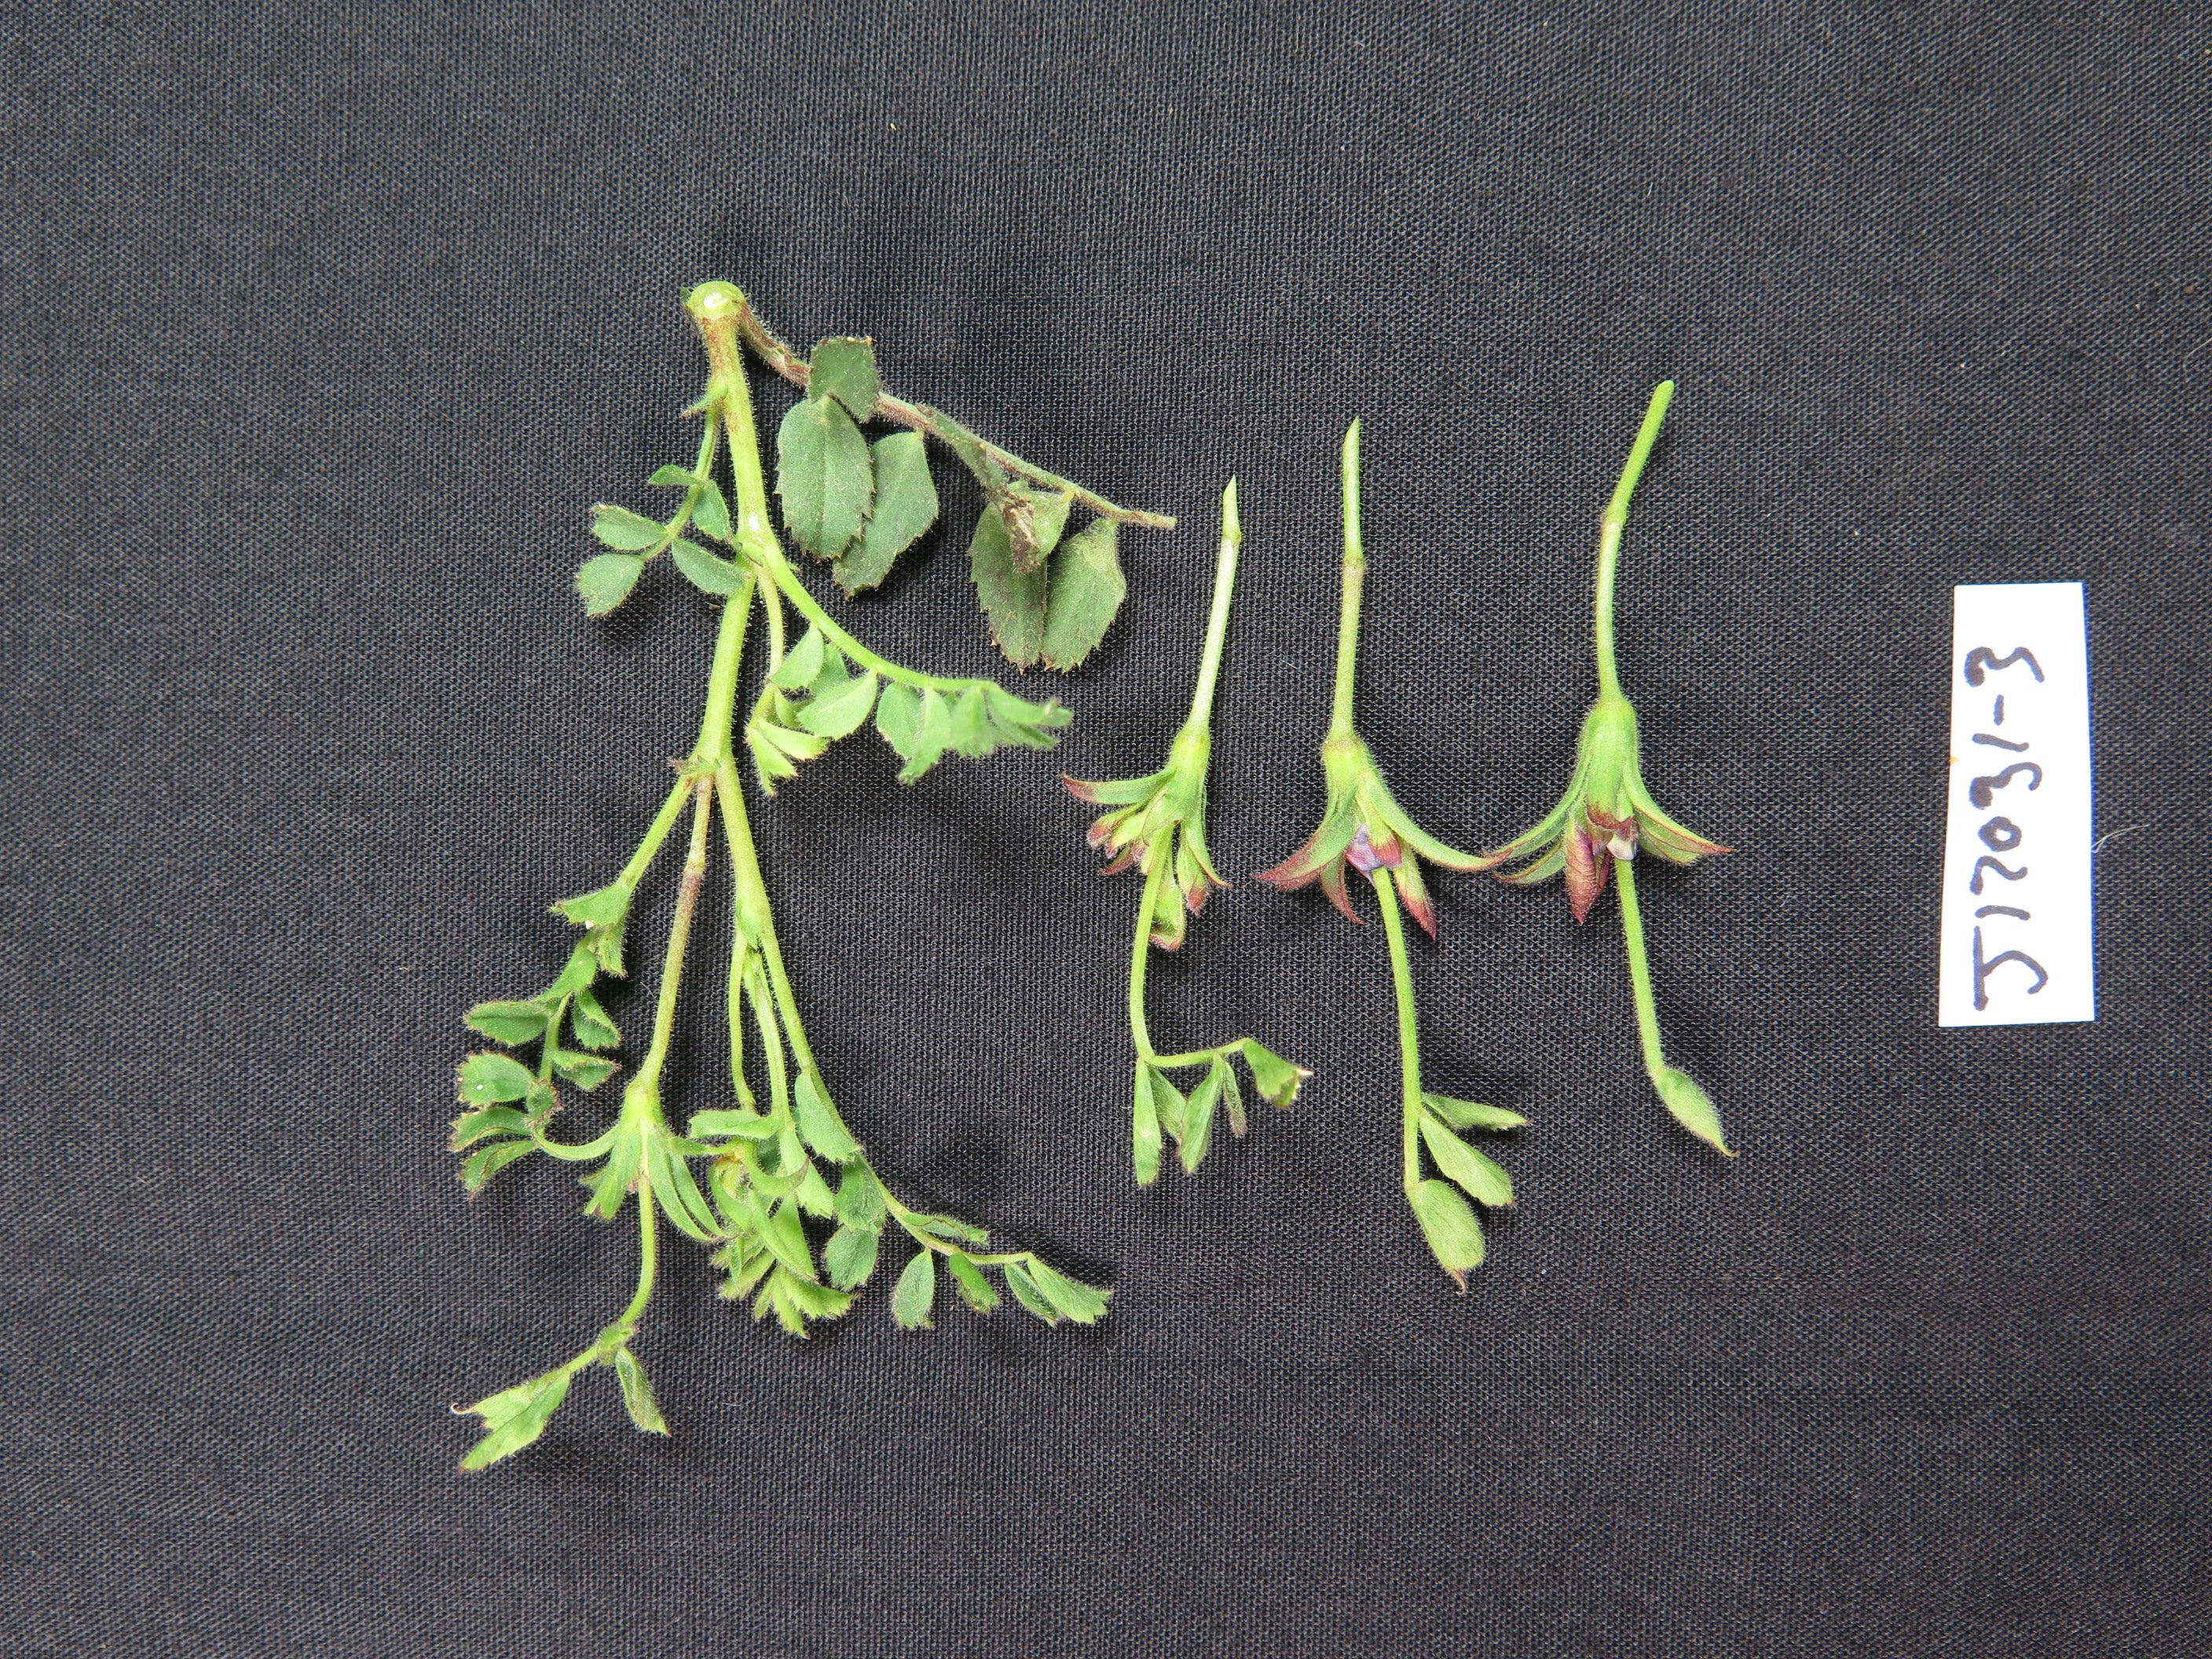 Severely affected plants may not produce any pods.